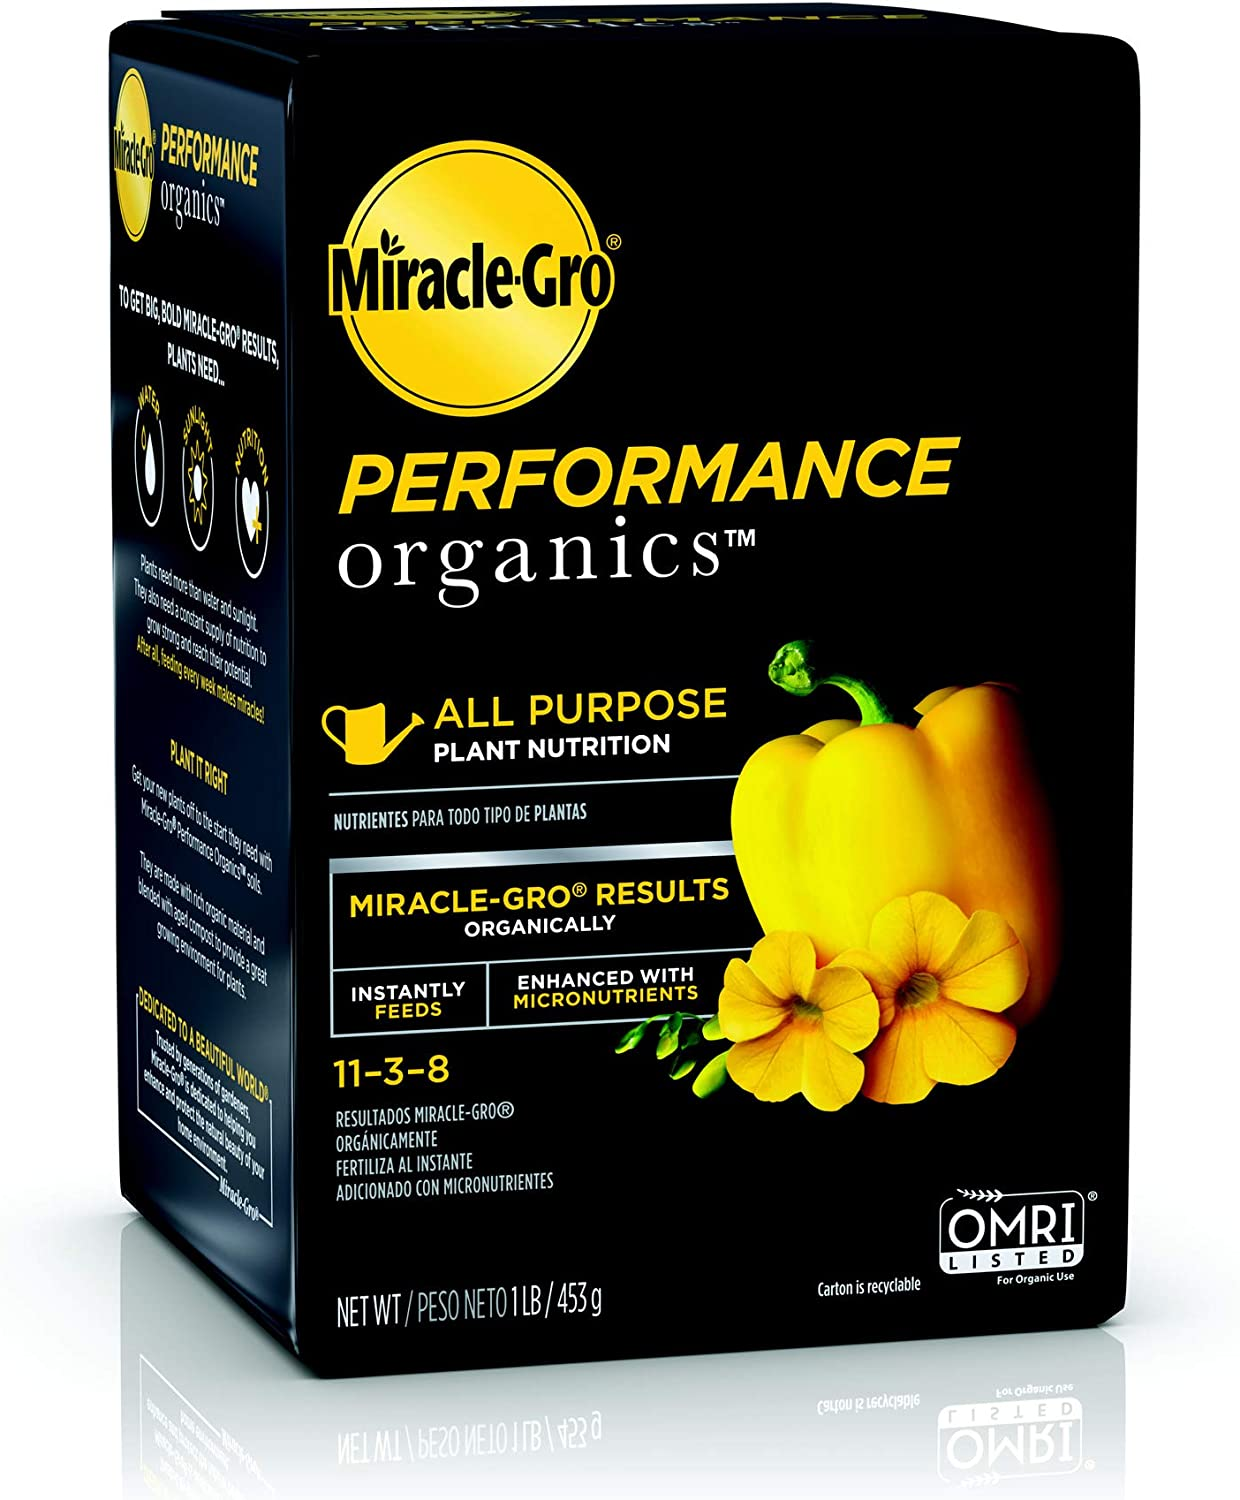 Miracle-Gro Performance Organics All Purpose Plant Nutrition, 1 lb. - All Natural Plant Food for Vegetables, Flowers and Herbs - Apply Every 7 Days for Best Results - Feeds up to 200 sq. ft.